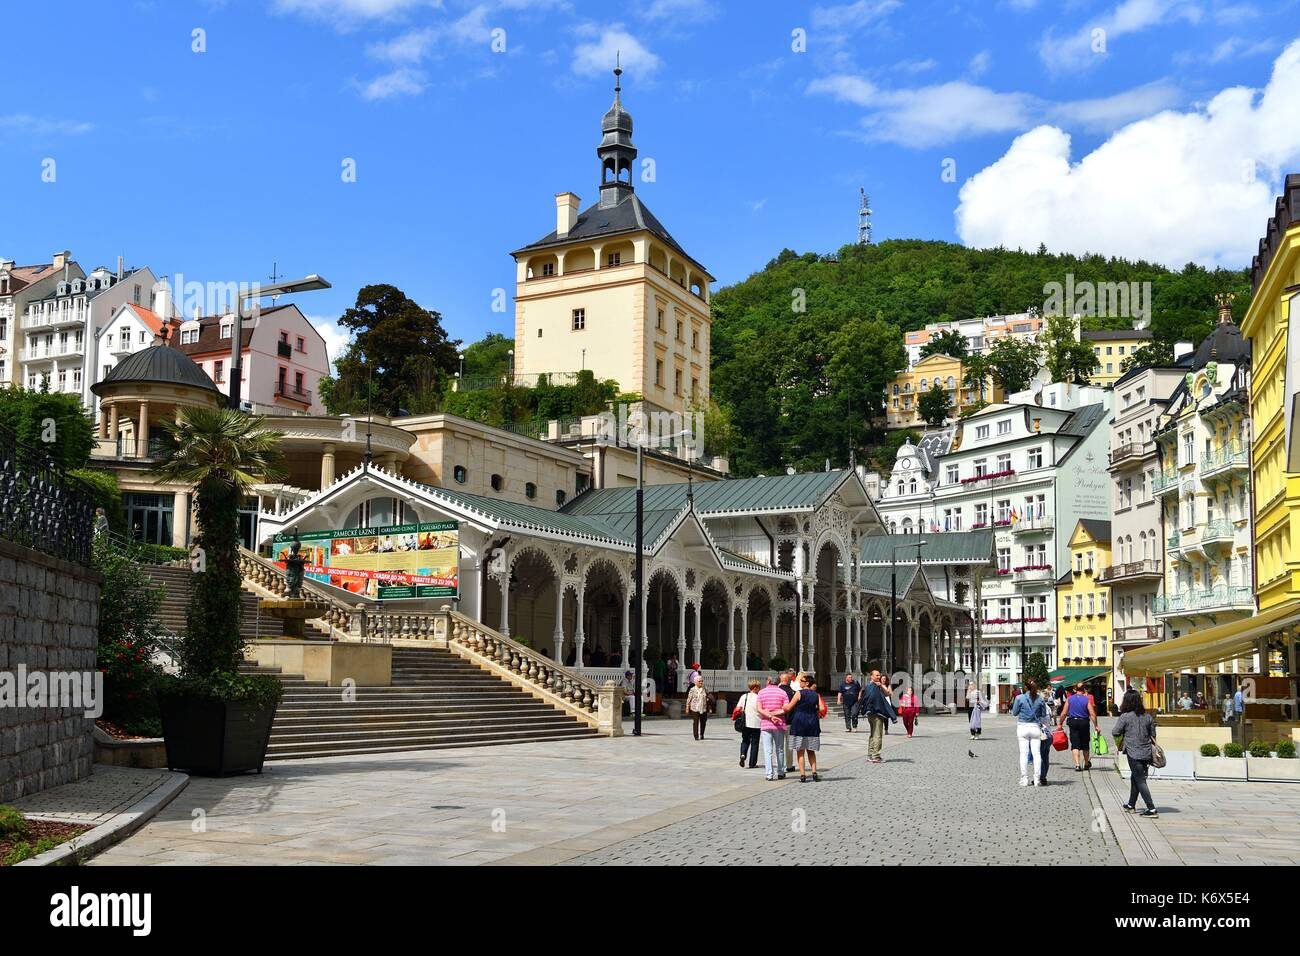 karlovy vary christian personals Expatscz - prague and the czech republic's #1 english-language resource and expatriate community website, featuring listings for jobs in prague, real estate in the czech republic, prague classifieds, events, businesses, cinema, and useful prague-based articles and community forums.